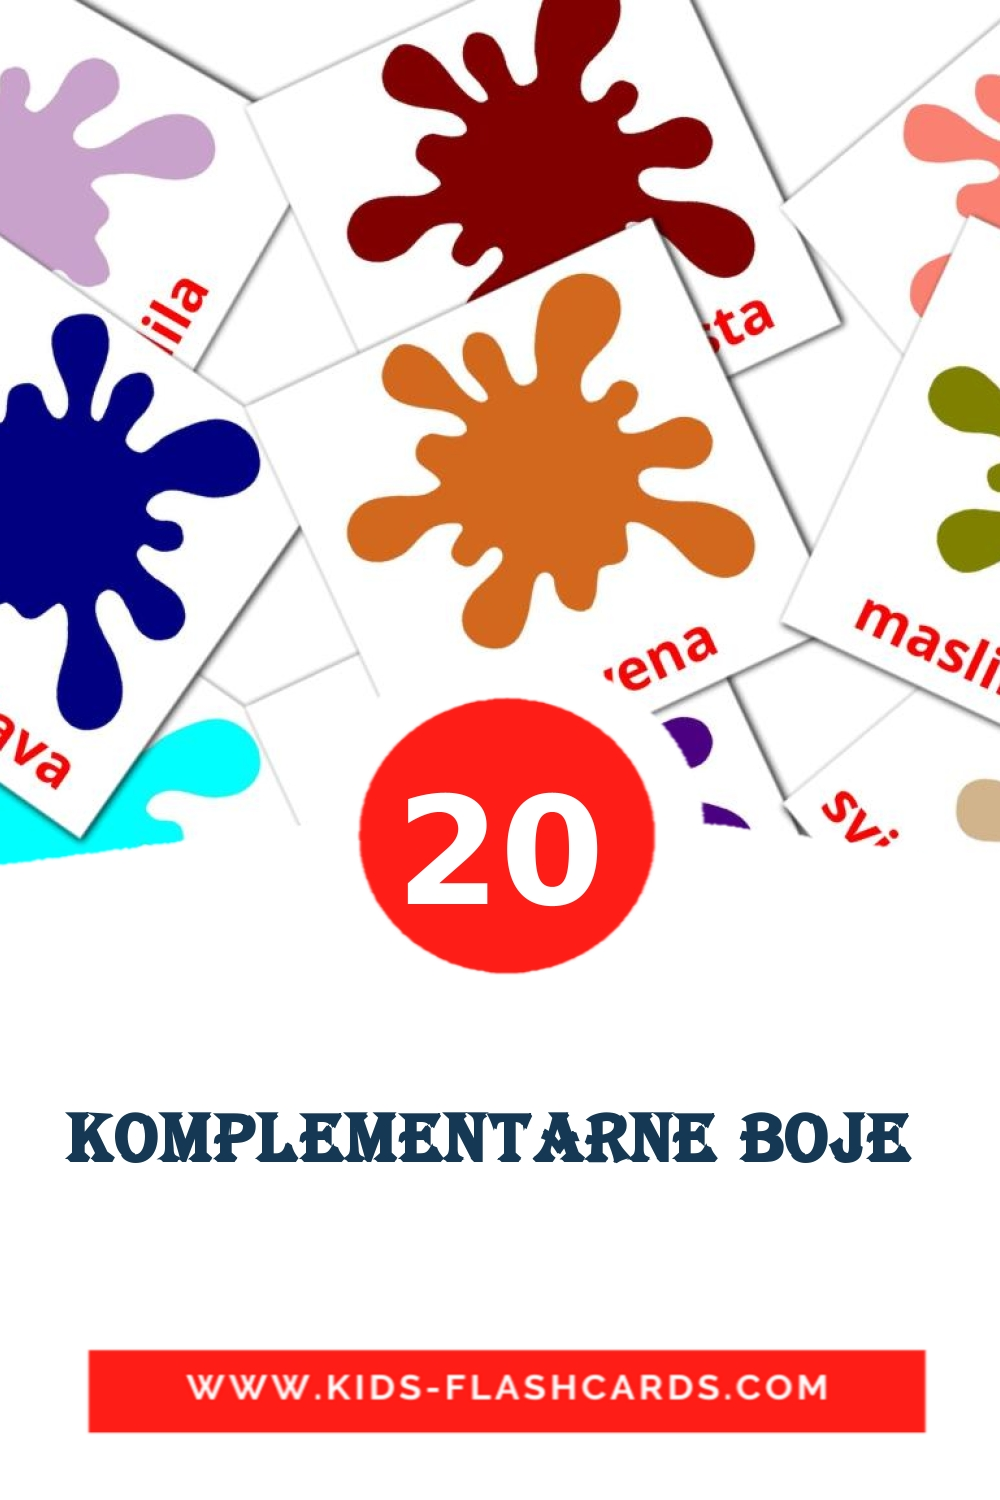 20 Komplementarne boje  Picture Cards for Kindergarden in croatian